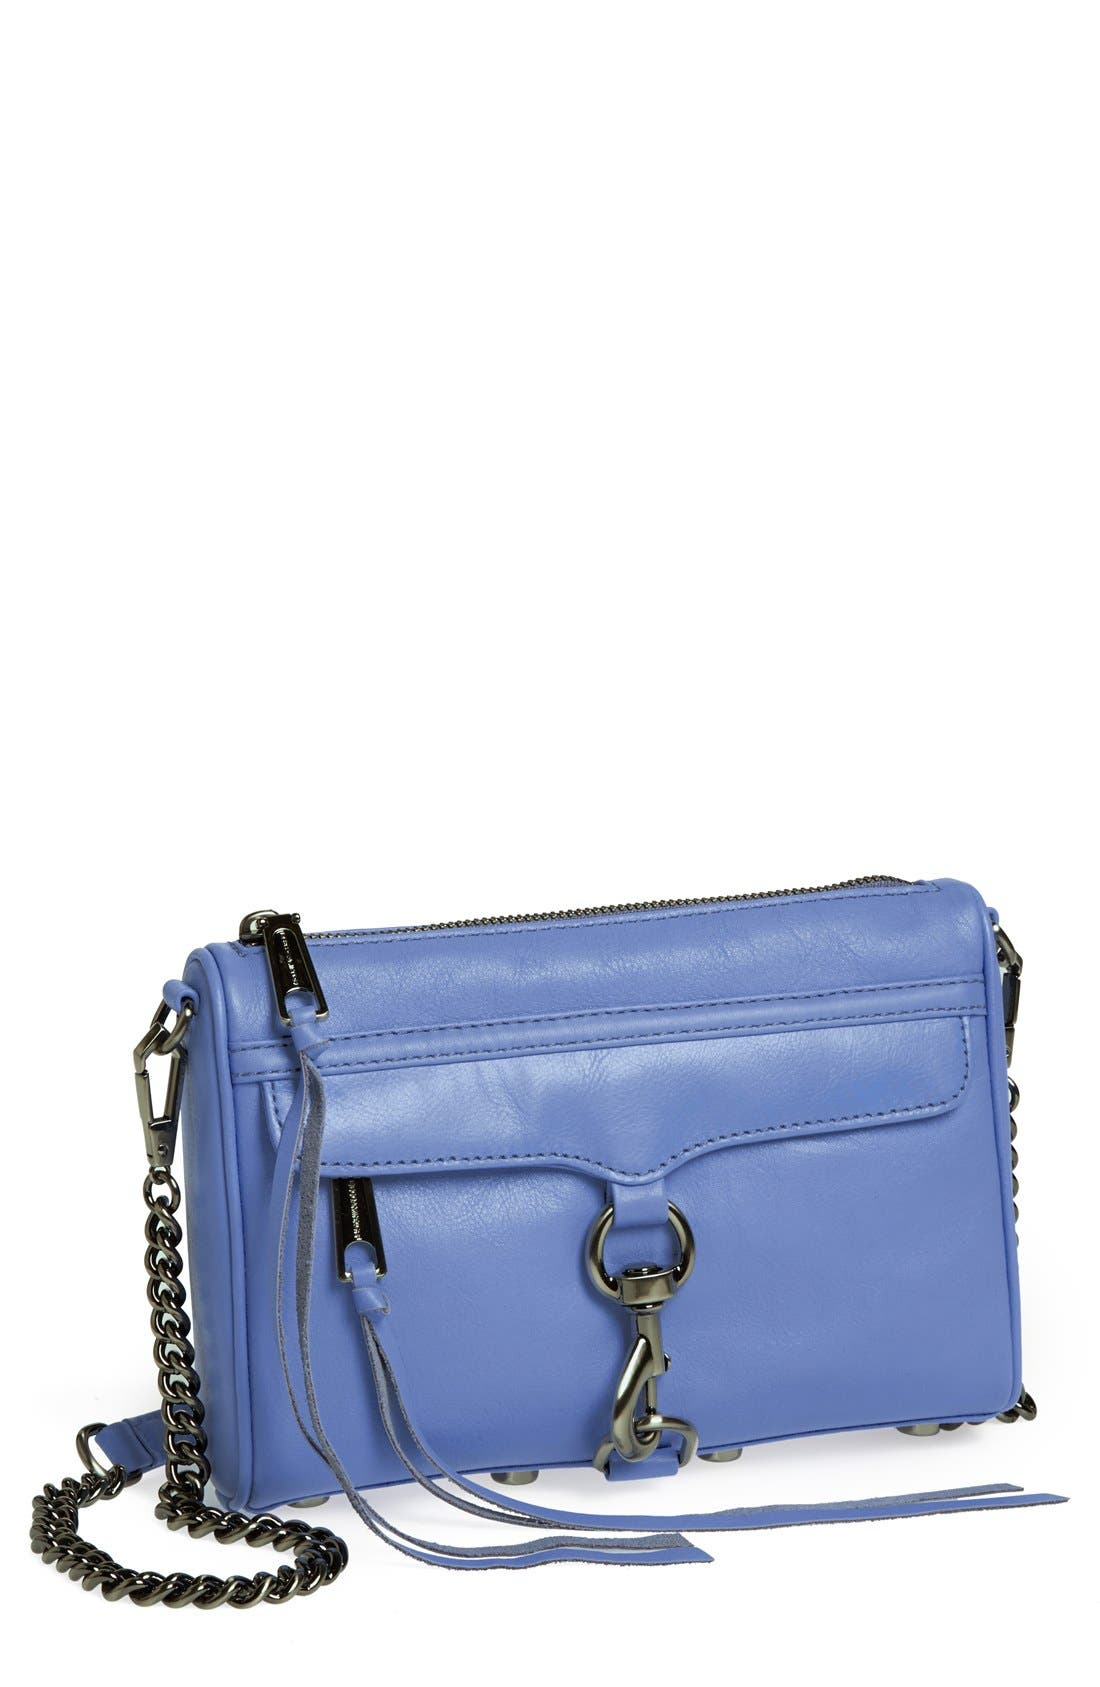 Main Image - Rebecca Minkoff 'Mini MAC' Crossbody Bag